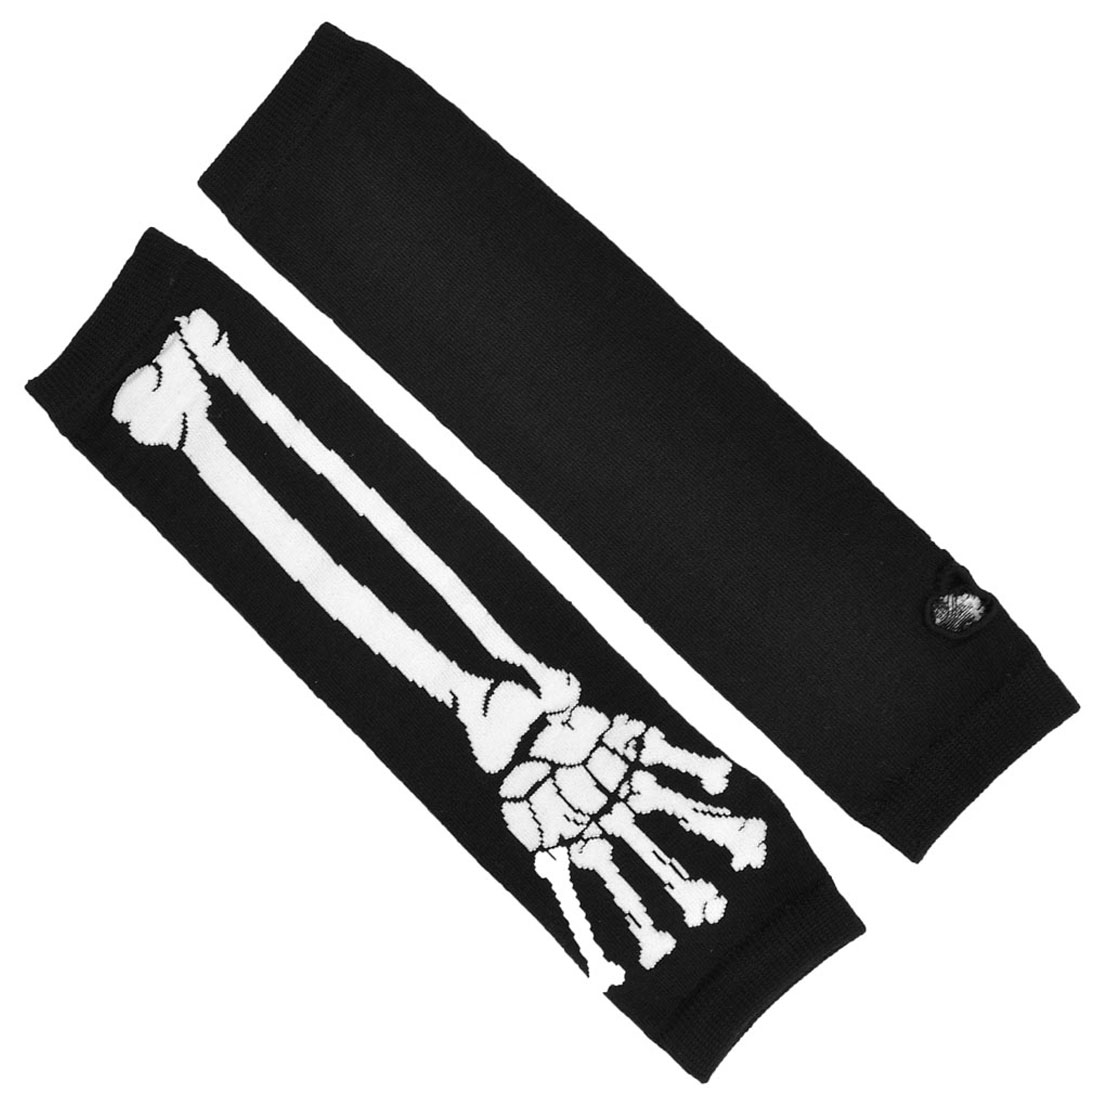 Lady Fingerless Knitted Black White Hand Bone Pattern Arm Gloves Warmers Pair